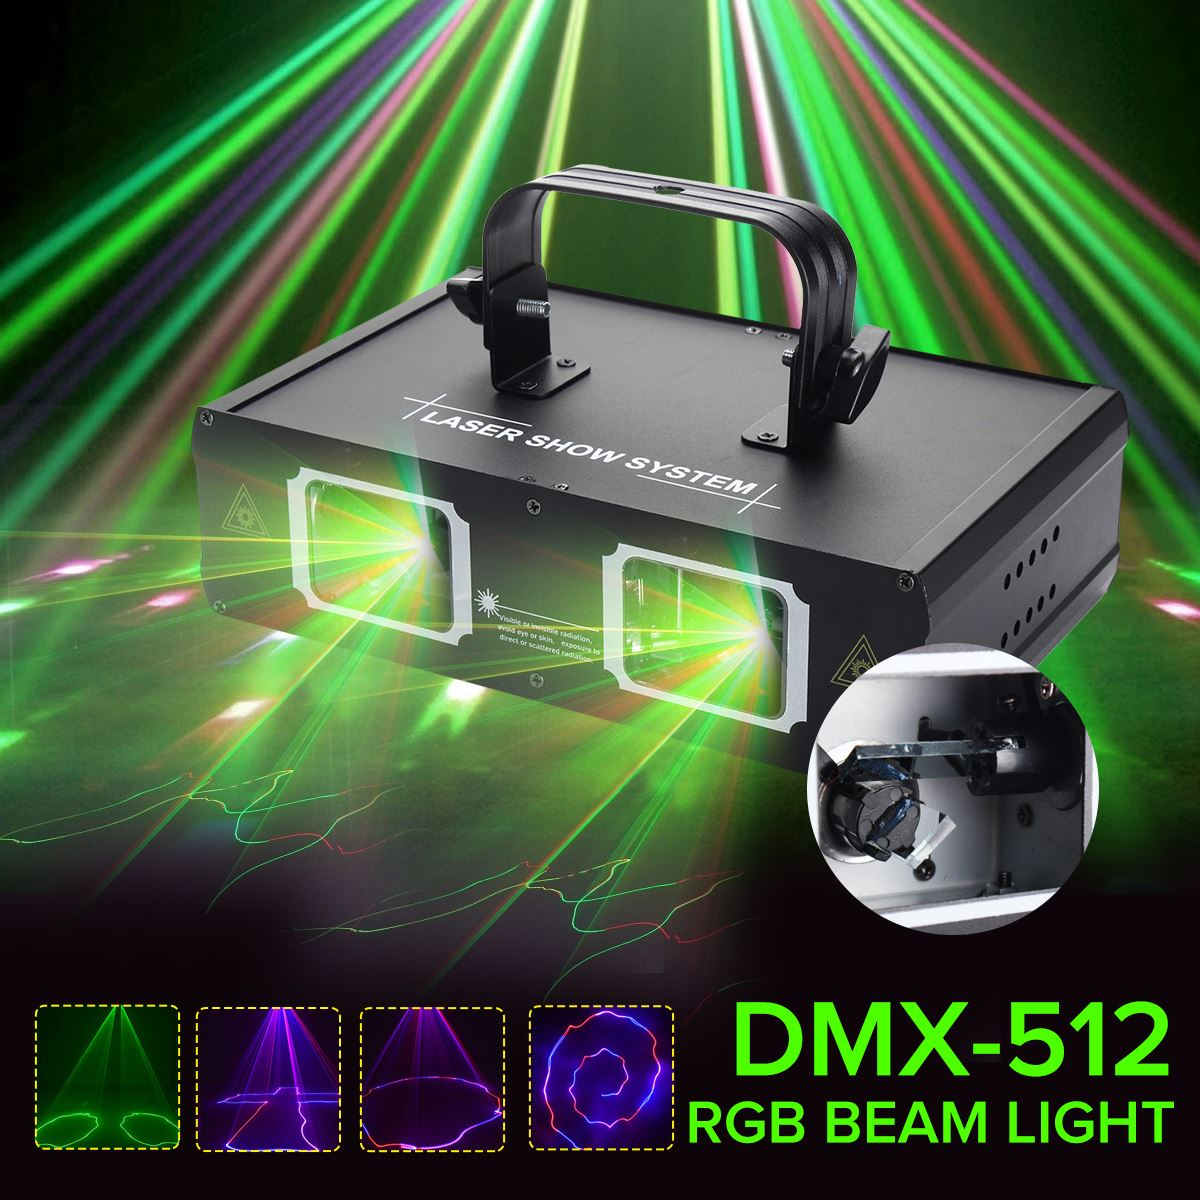 Claite DMX-512 LED Stage Light Lamp Disco Laser Lighting With US Plug Indoor Decoration For KTV Pub Party Club DMX Lumiere Laser 8in1 roadcase pack 12x18w waterproof outdoor led stage light 6 in 1 par dmx 512 lighting laser projector party club pub ktv dj